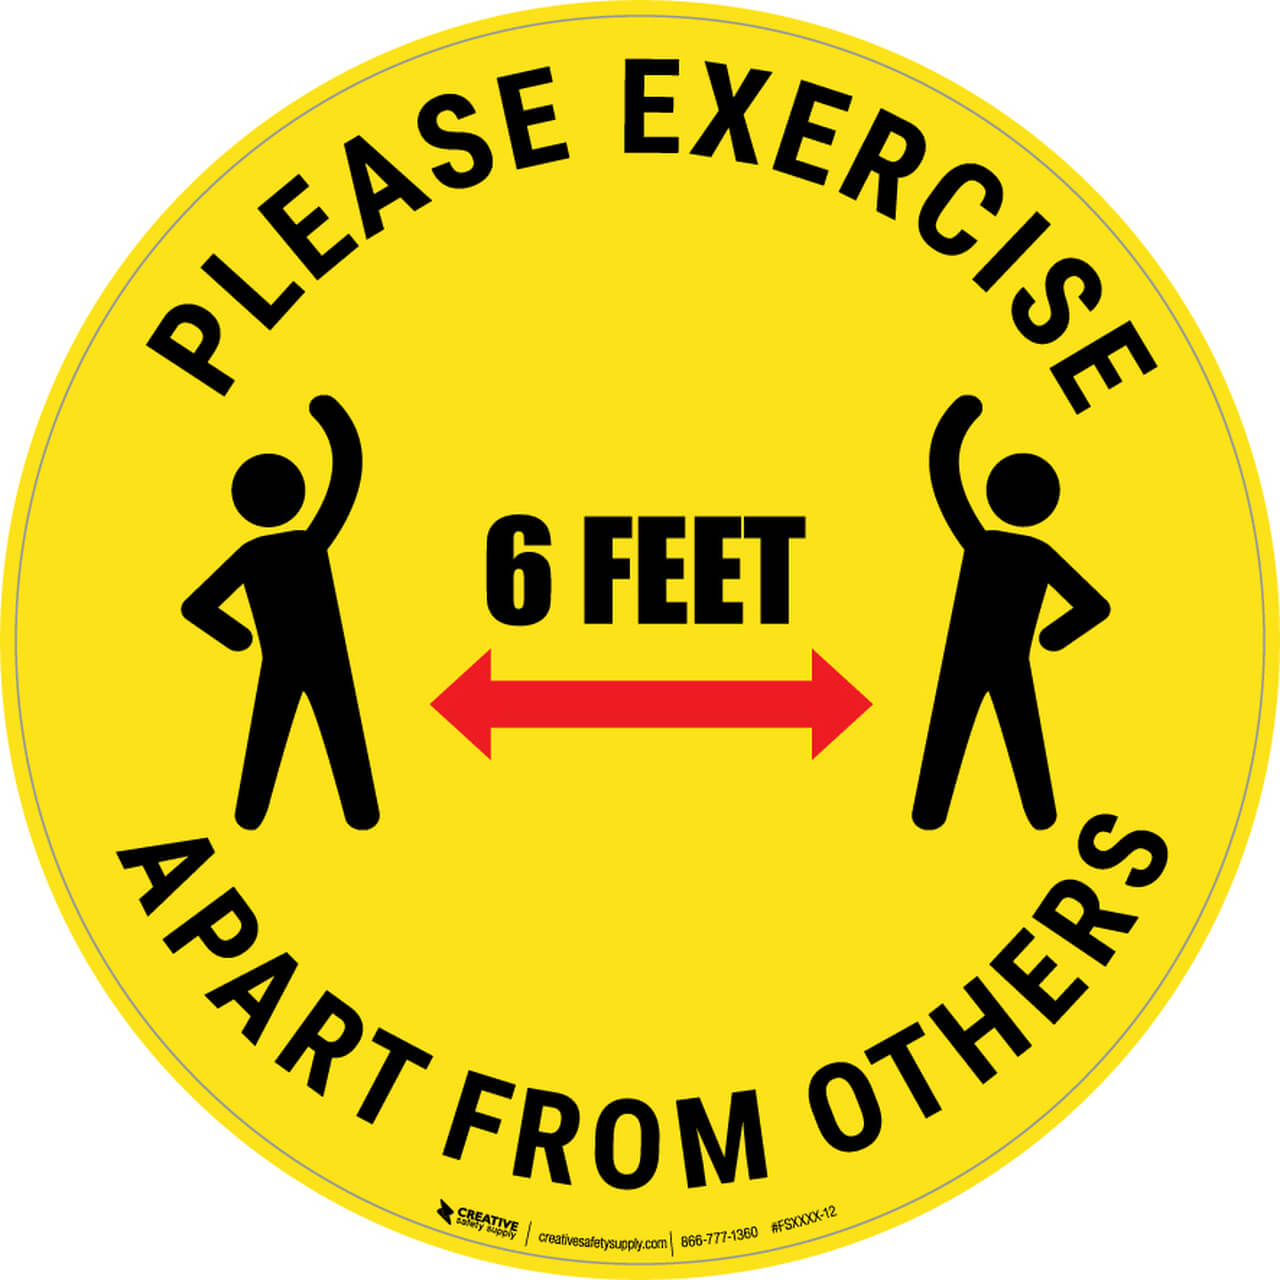 Please Exercise 6 Feet Apart From Others Sign